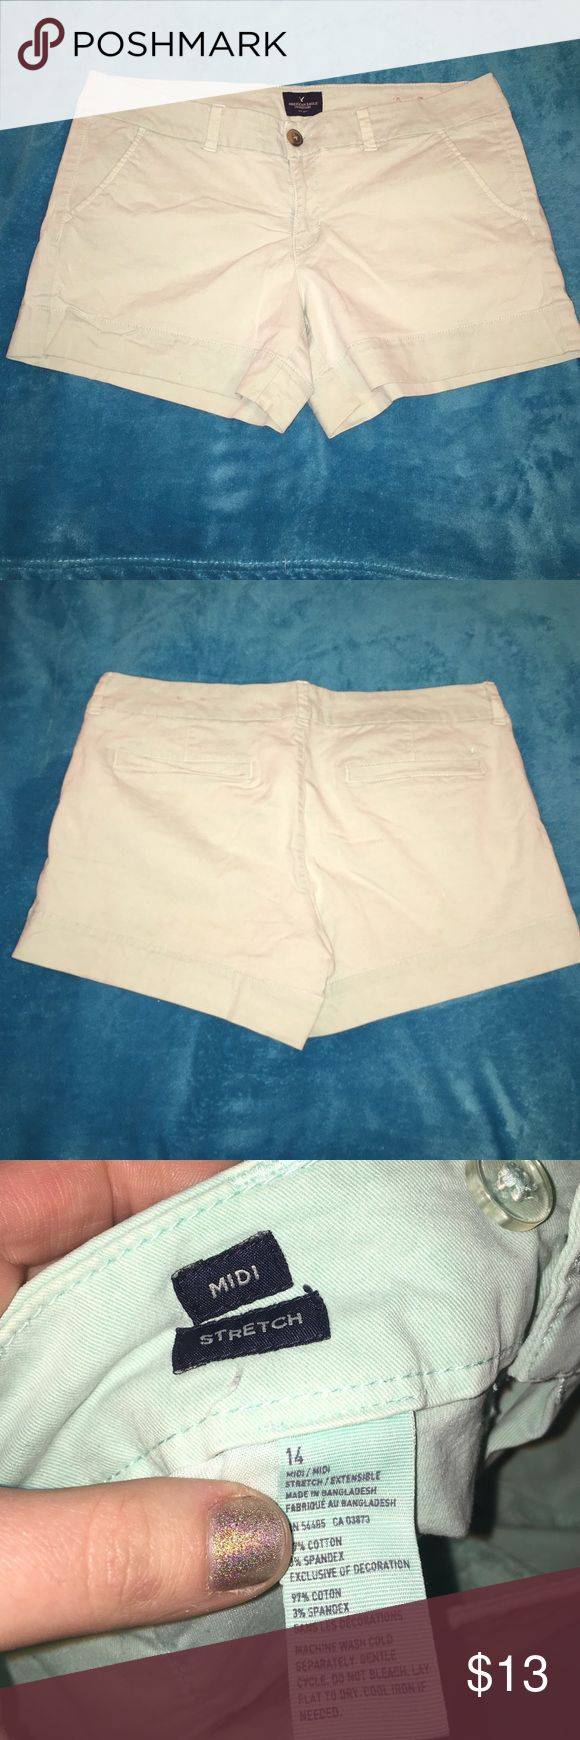 AE mint shorts American Eagle size 14 stretch mint colored shorts. Worn a handful of times, super comfy! No rips stains or tears. 37 inch waist, 4.5 inch inseam. American Eagle Outfitters Shorts